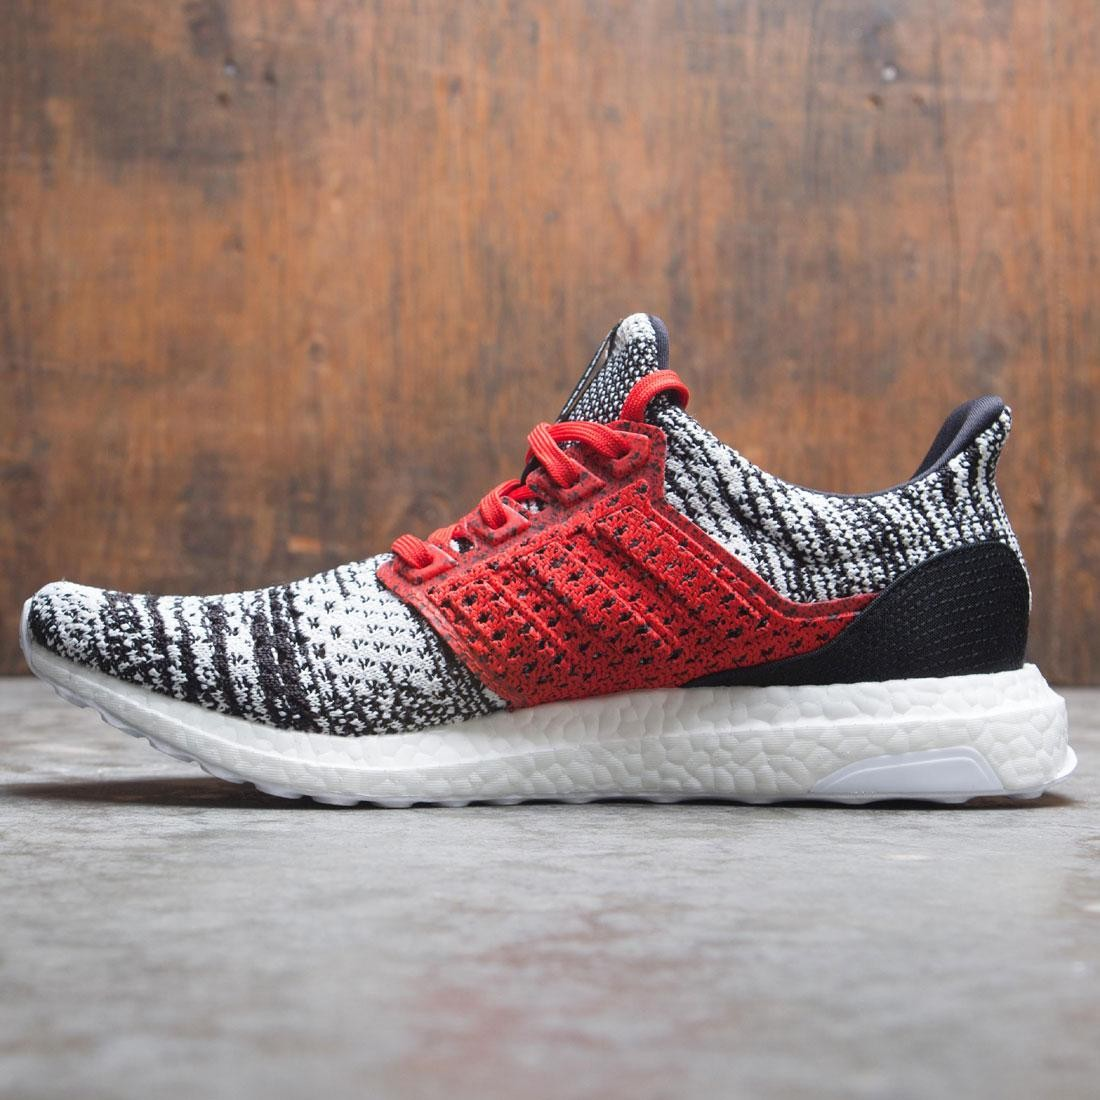 69d6273da84 Adidas x Missoni Men UltraBOOST CLIMA (black   footwear white   active red)